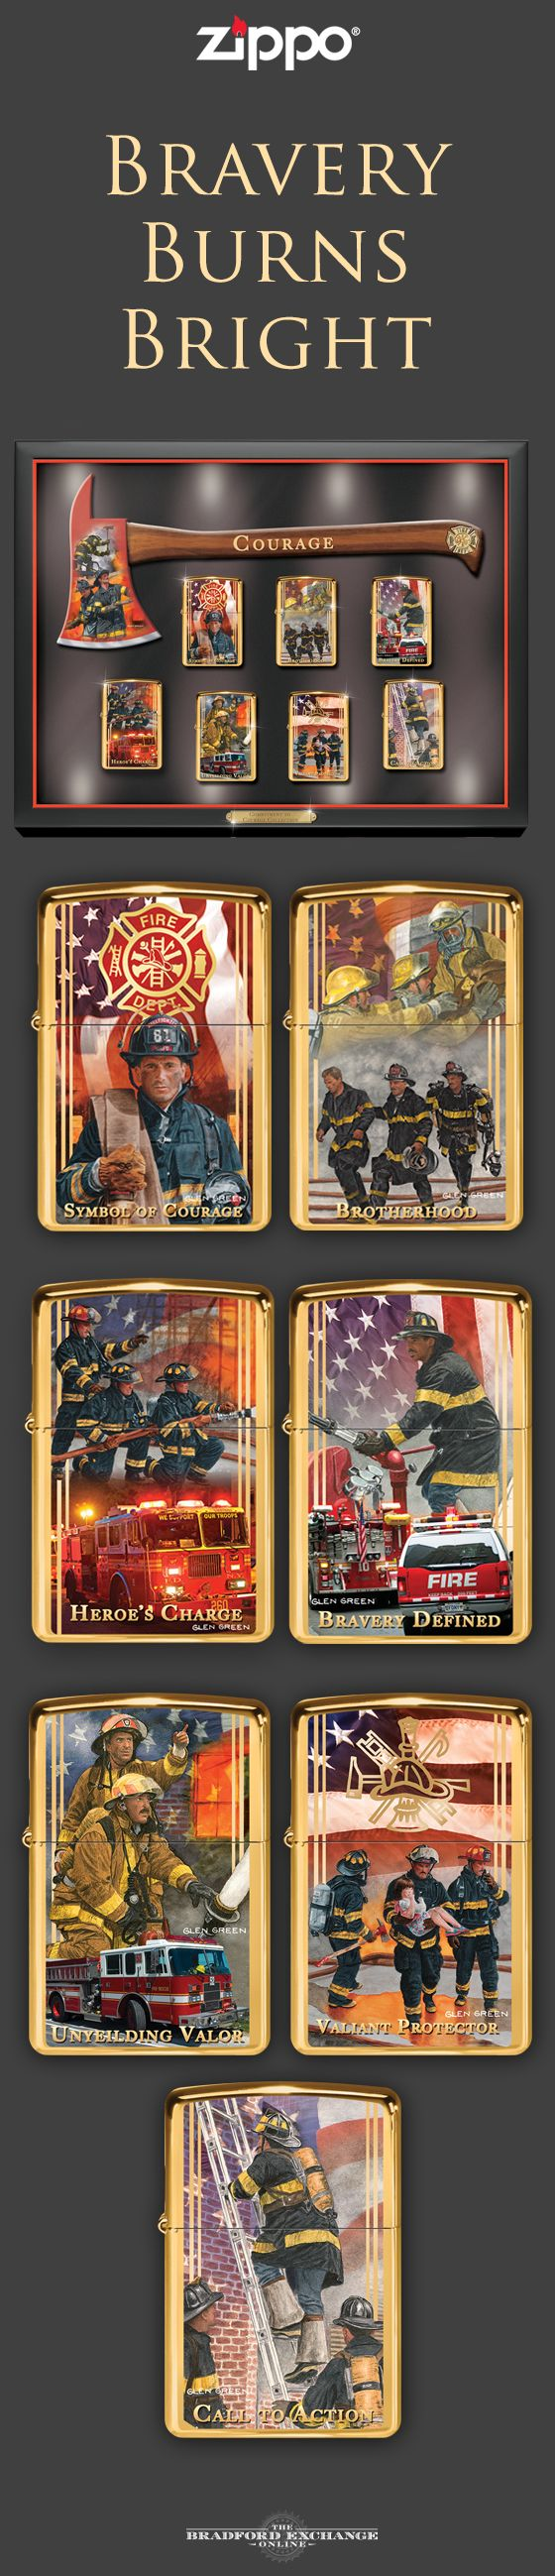 Honor the heroic acts of brave firefighters with this Zippo lighter collection. Each officially-licensed lighter is emblazoned with Glen Green's stirring artwork, and a handsome custom display case is included with the collection. Hurry, as only 8,000 of this complete collection will ever be created.